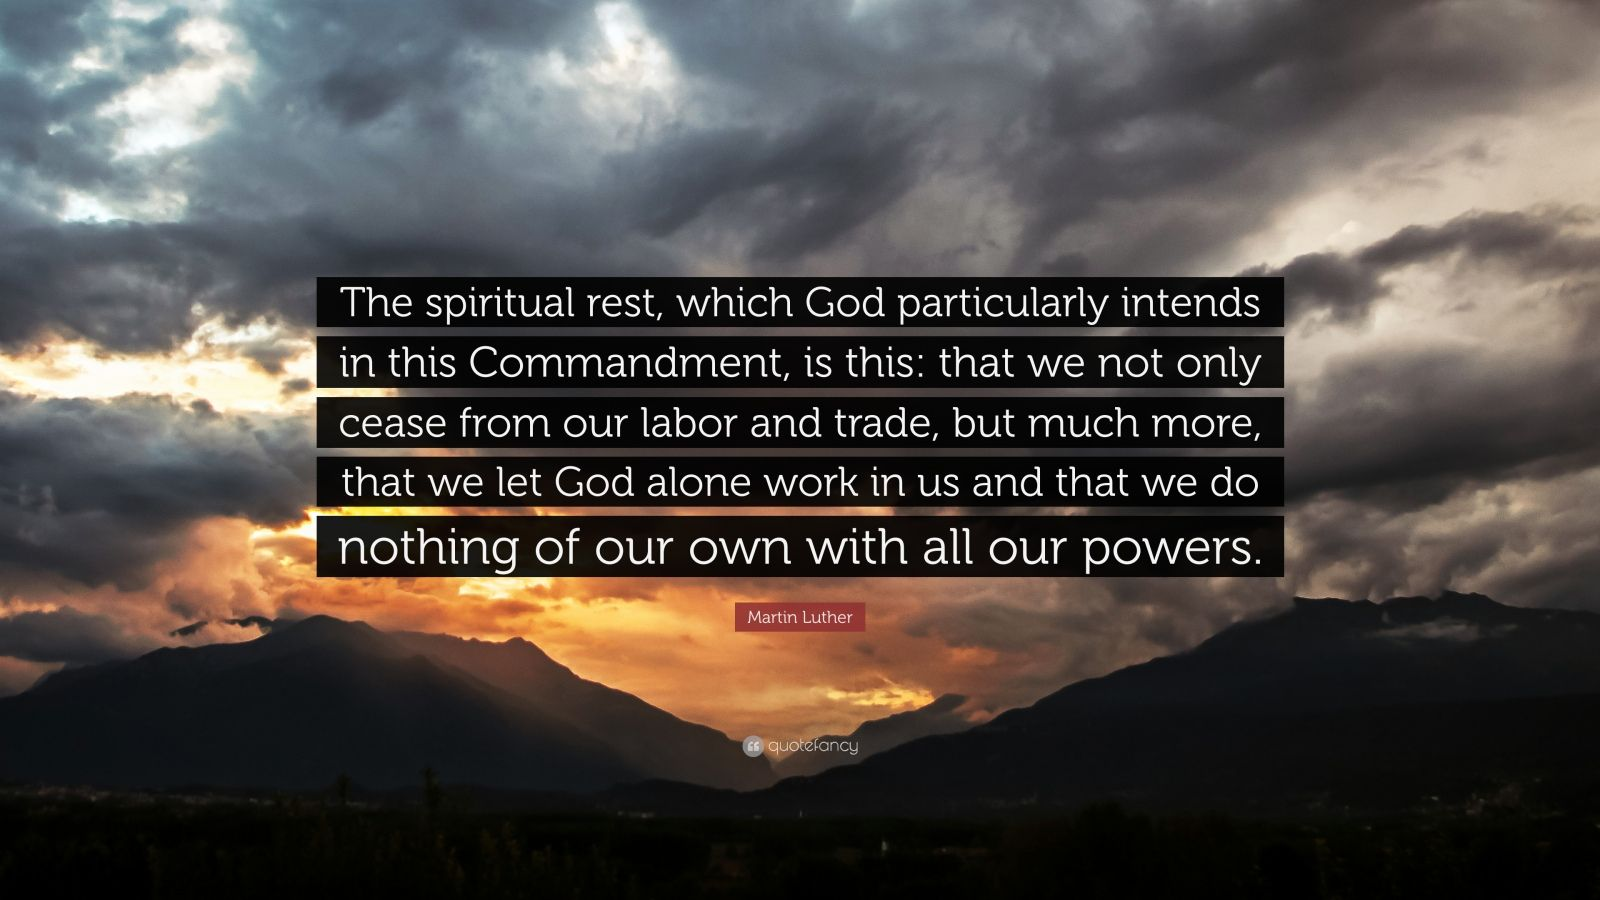 """Martin Luther Quote: """"The spiritual rest, which God particularly intends in this Commandment, is this: that we not only cease from our labor and trade, but much more, that we let God alone work in us and that we do nothing of our own with all our powers."""""""